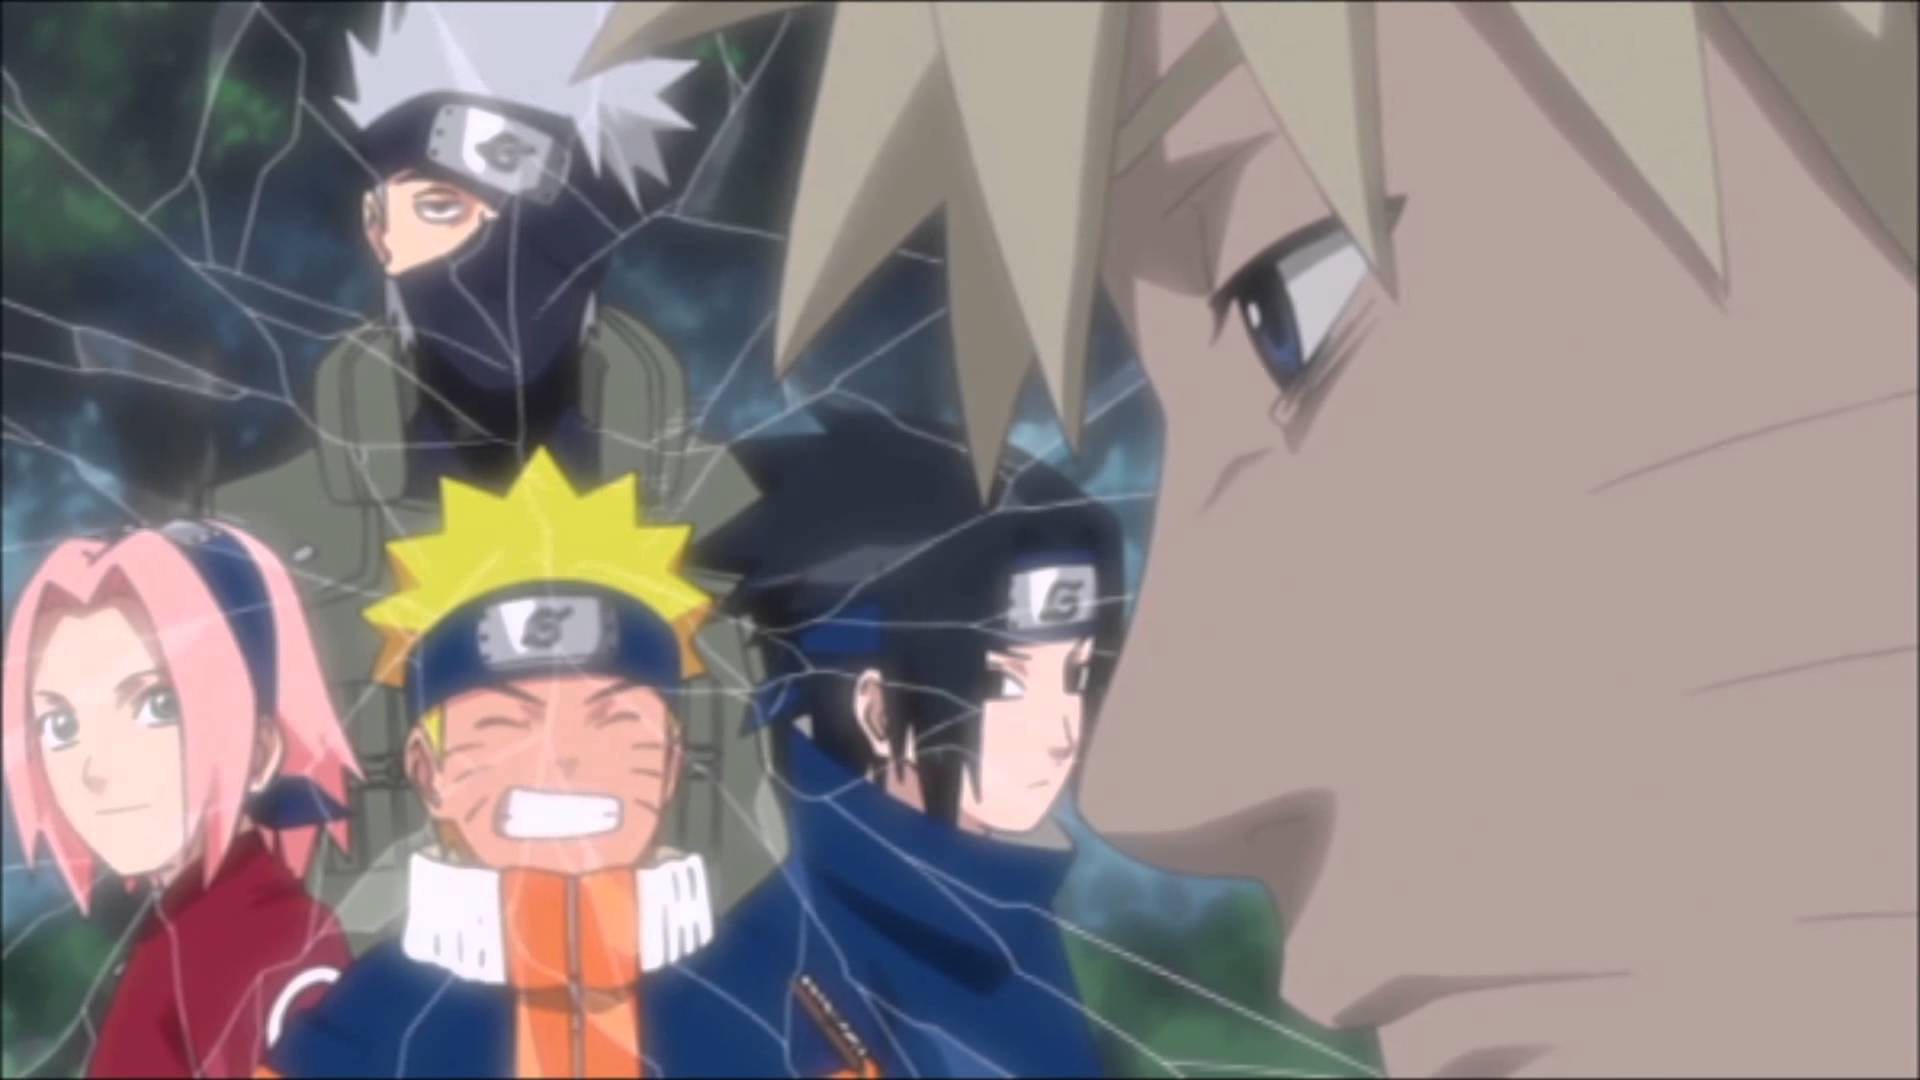 Naruto Team 7 Wallpapers HD - Cornegy.com